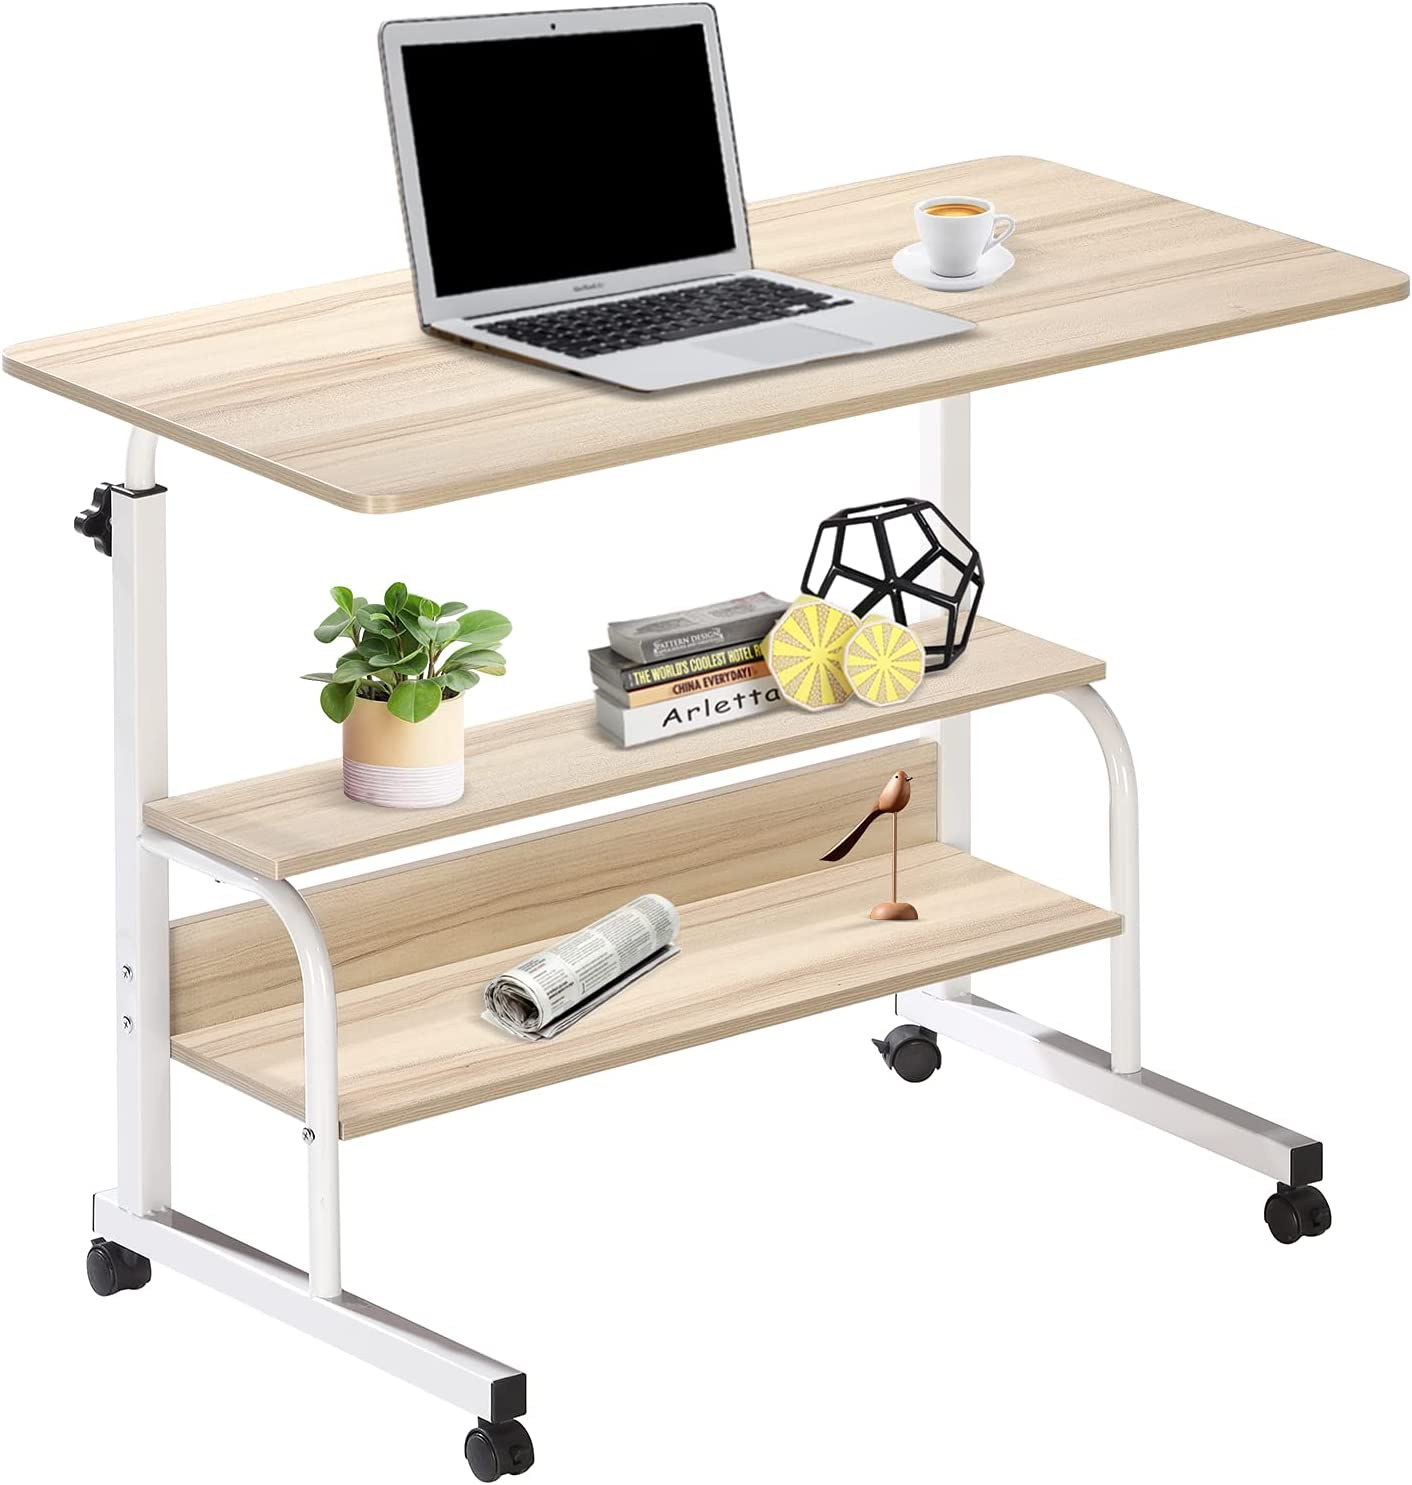 Computer Desk Home Office Student Writing Standing Desk with Storage, Kids Study Desk Laptop Table for Small Space, Small Portable Stand Up Desk for Home Bedroom, Adjustable Rolling Desk 32x16 inch